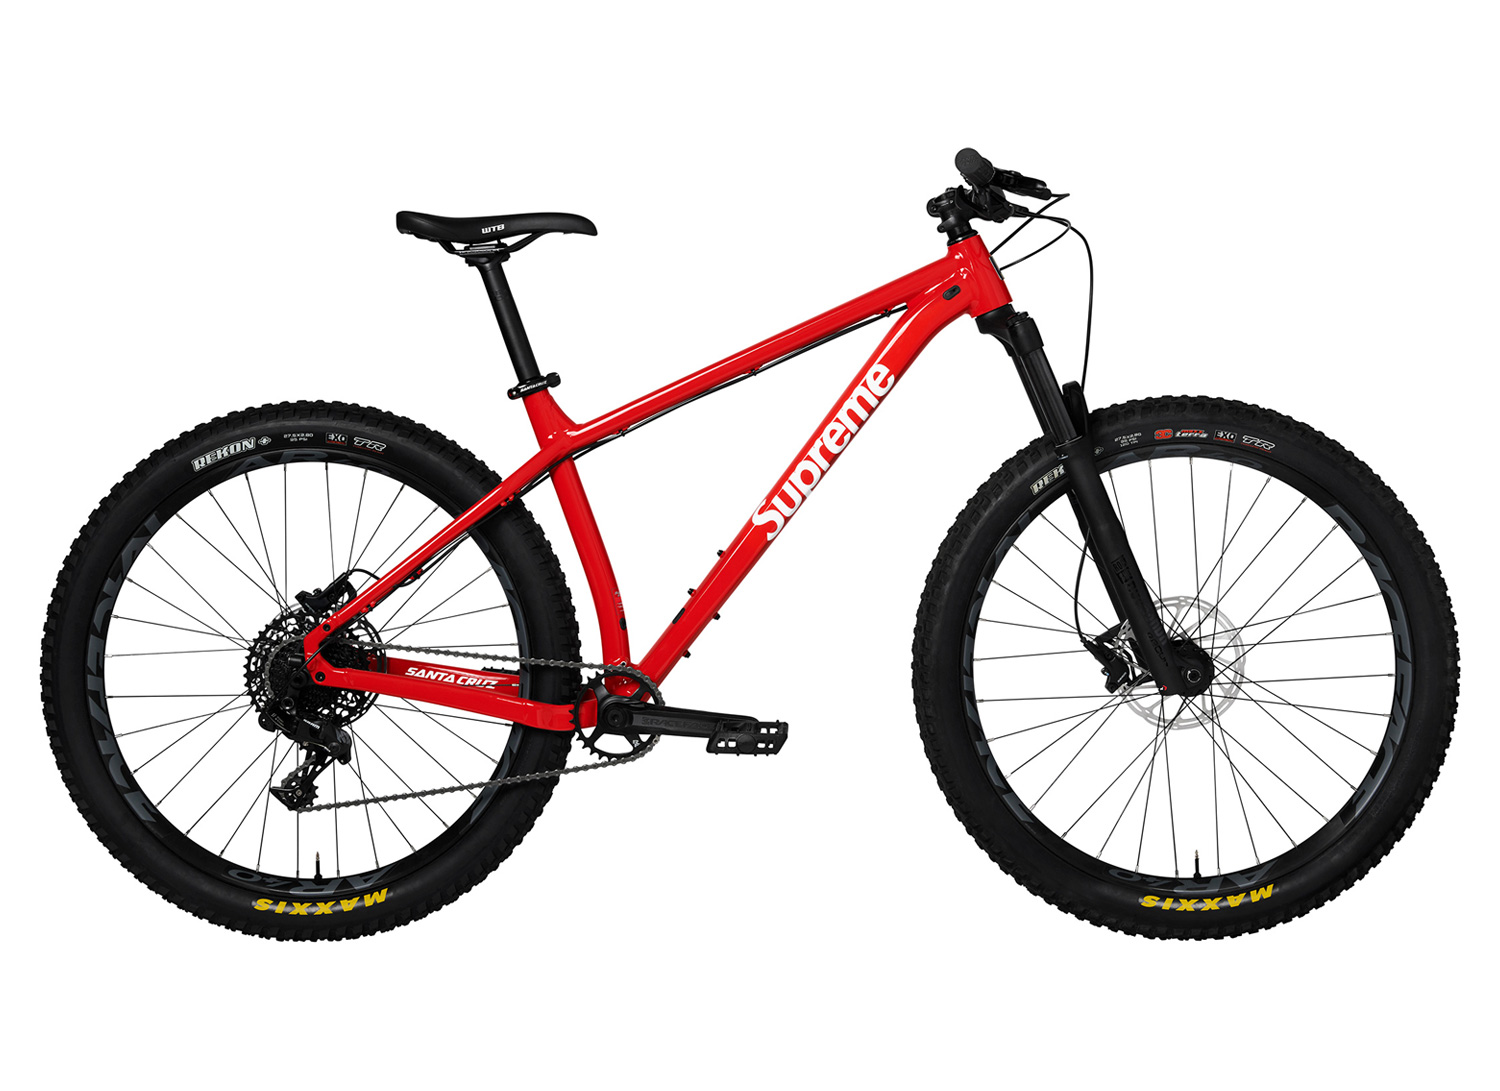 "Supreme®/Santa Cruz™ Chameleon 27.5"" Bike"